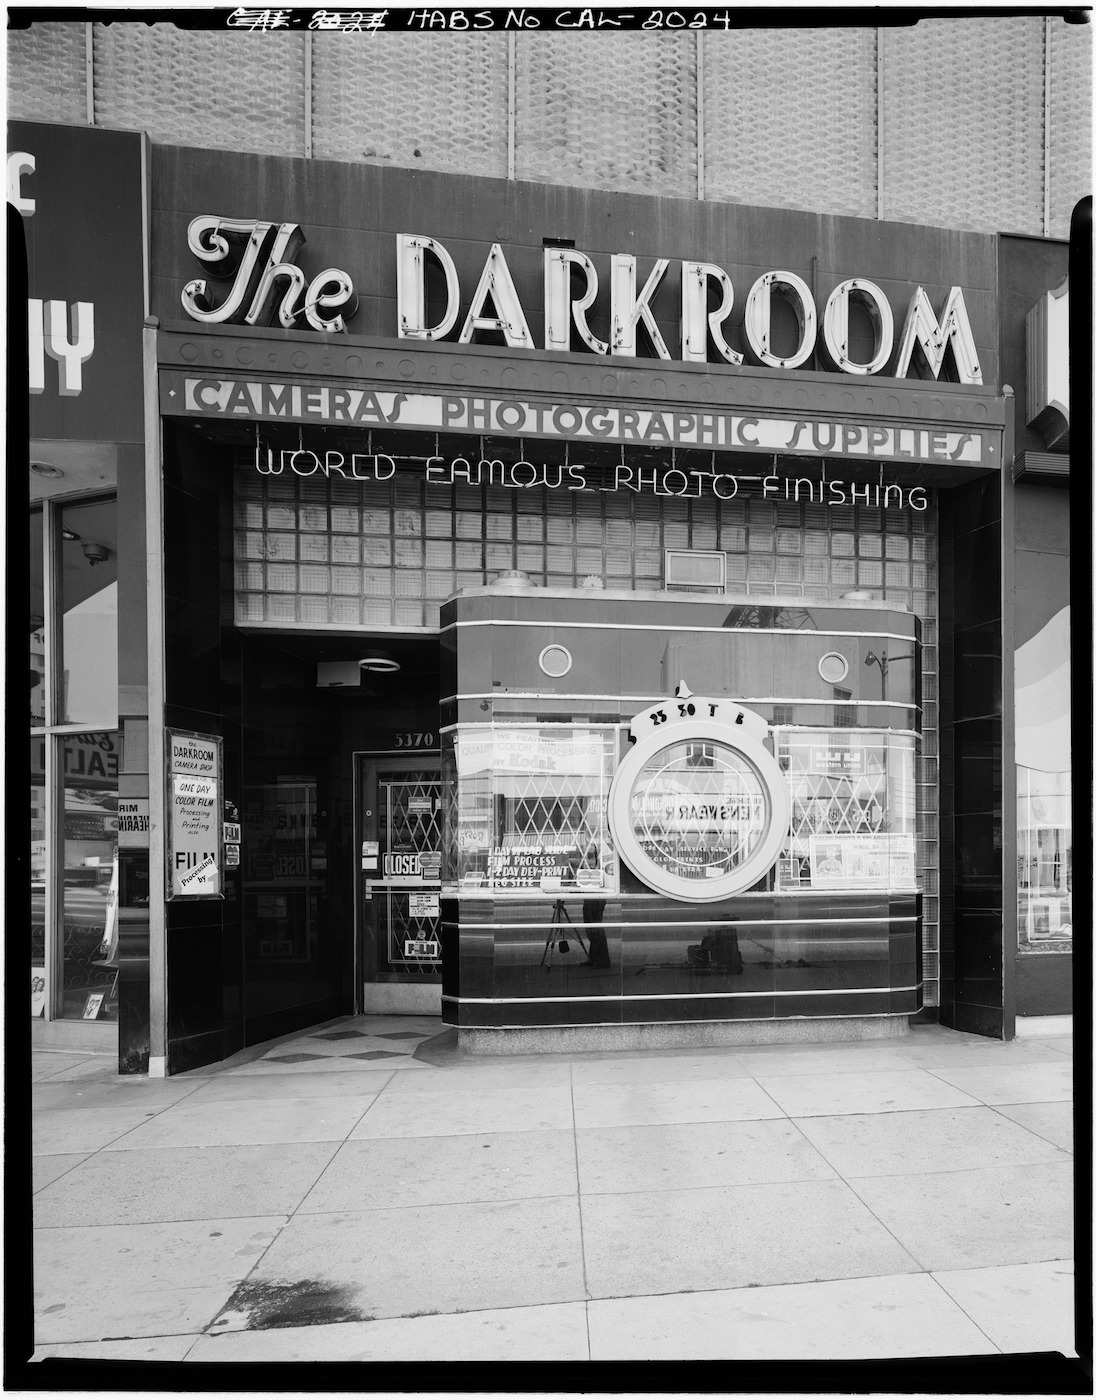 The Darkroom, a camera-shaped camera store, in Los Angeles (1972) (photo by Marvin Rand/Library of Congress)